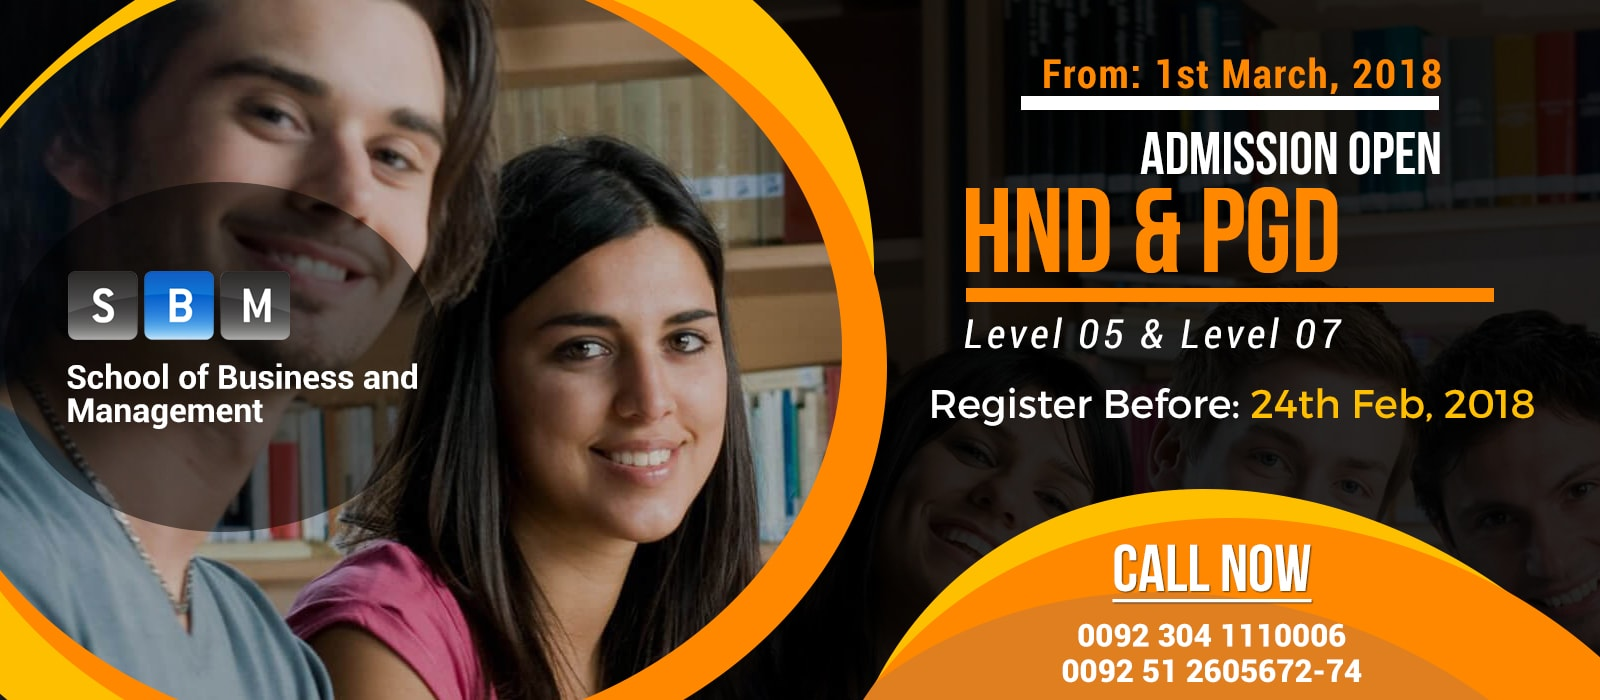 HND & PGD classes starting from 1st March, 2018